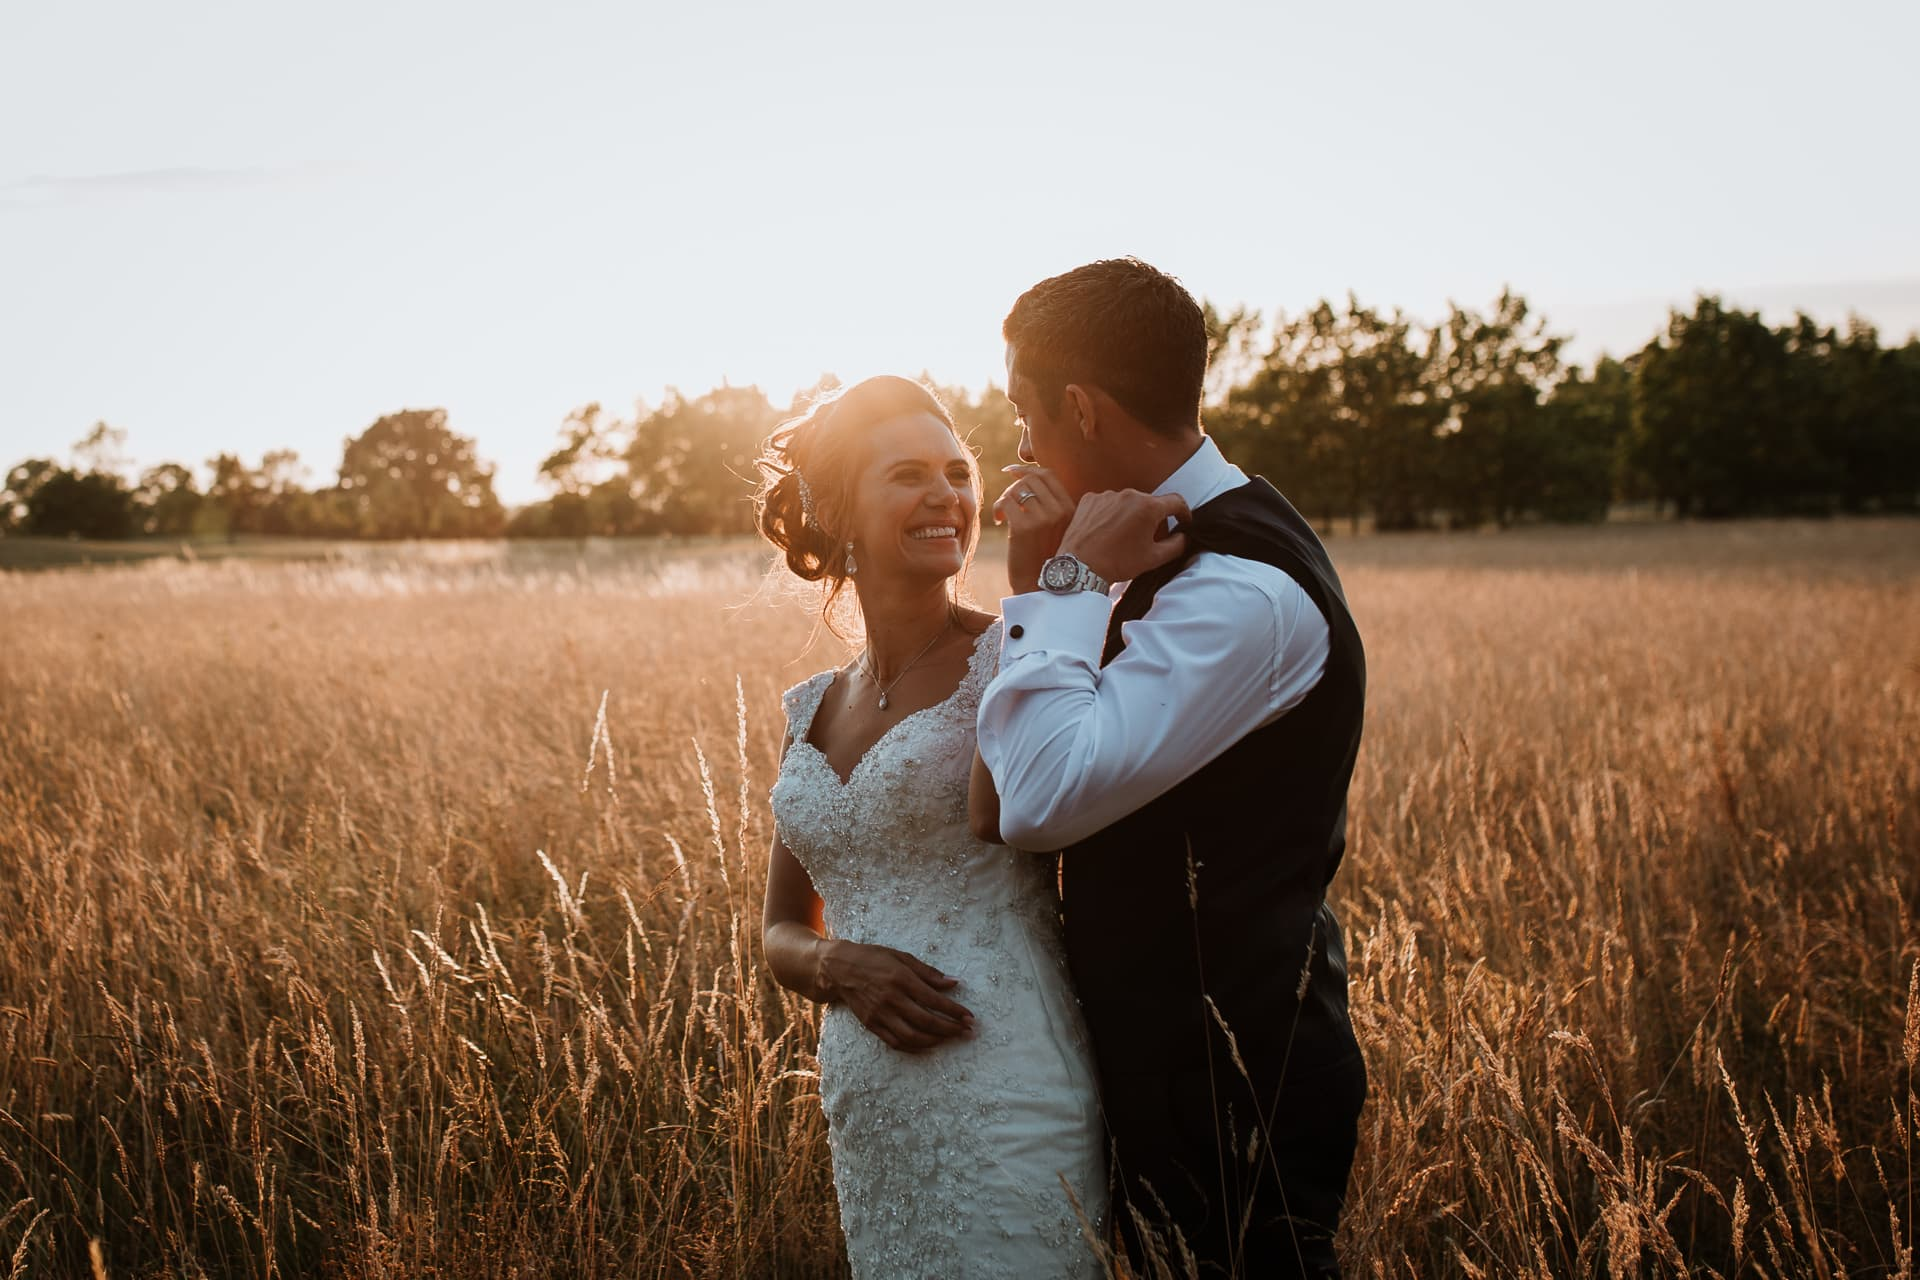 Documentary style image of Bride and Groom at sunset